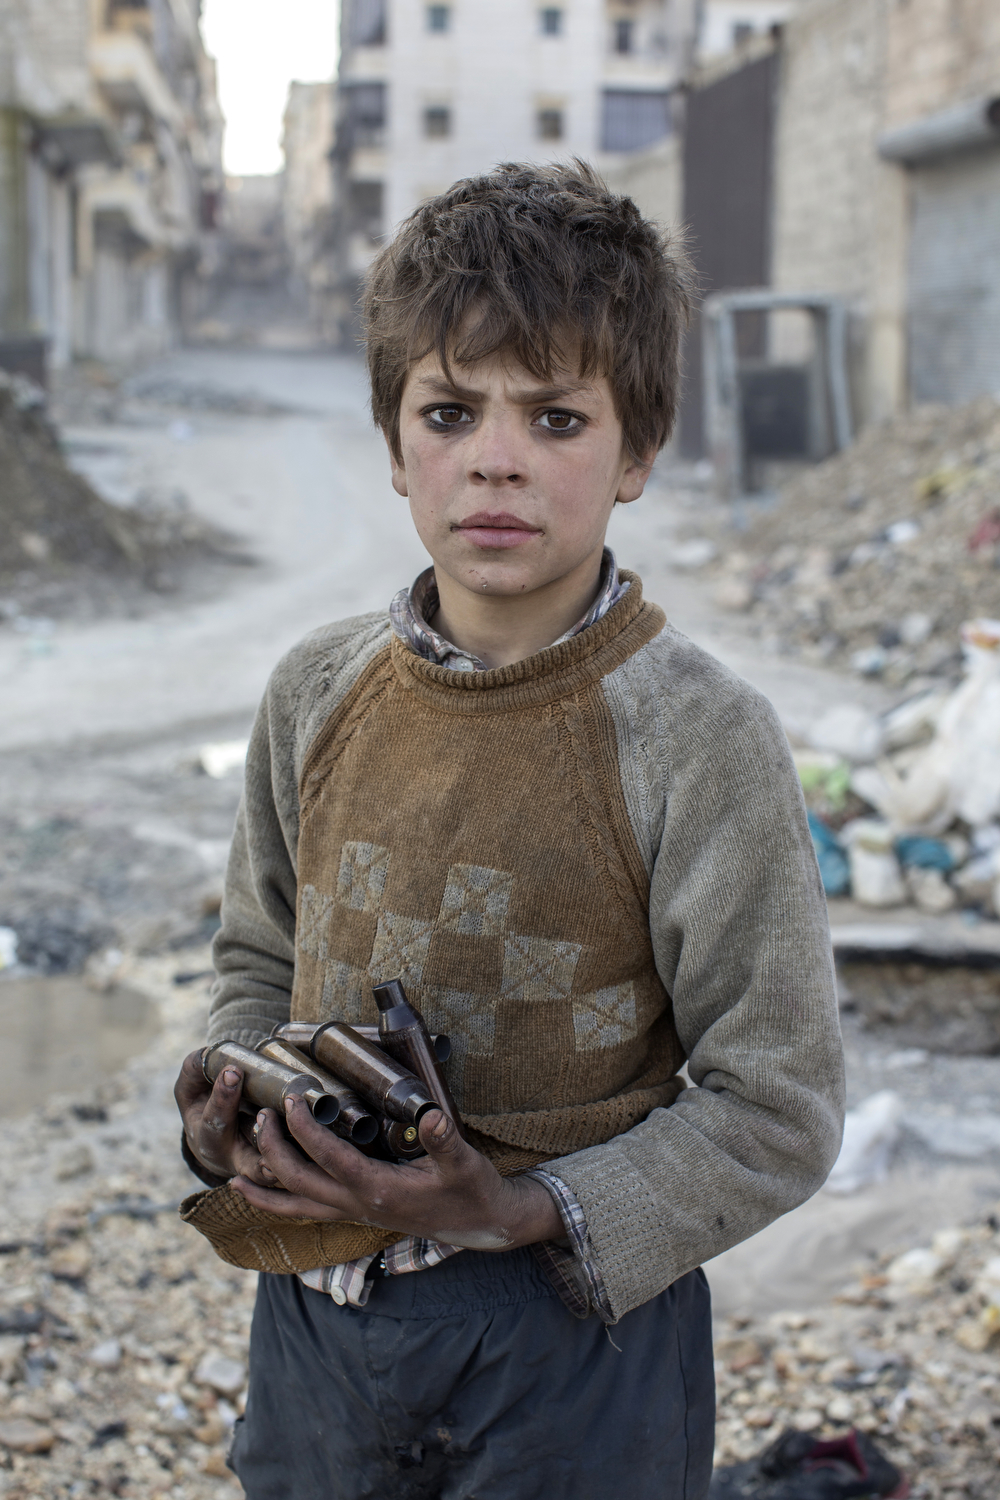 Nine year old Alladin collects used ammunition to sell as metal in Aleppo, Syria. © Niclas Hammarström